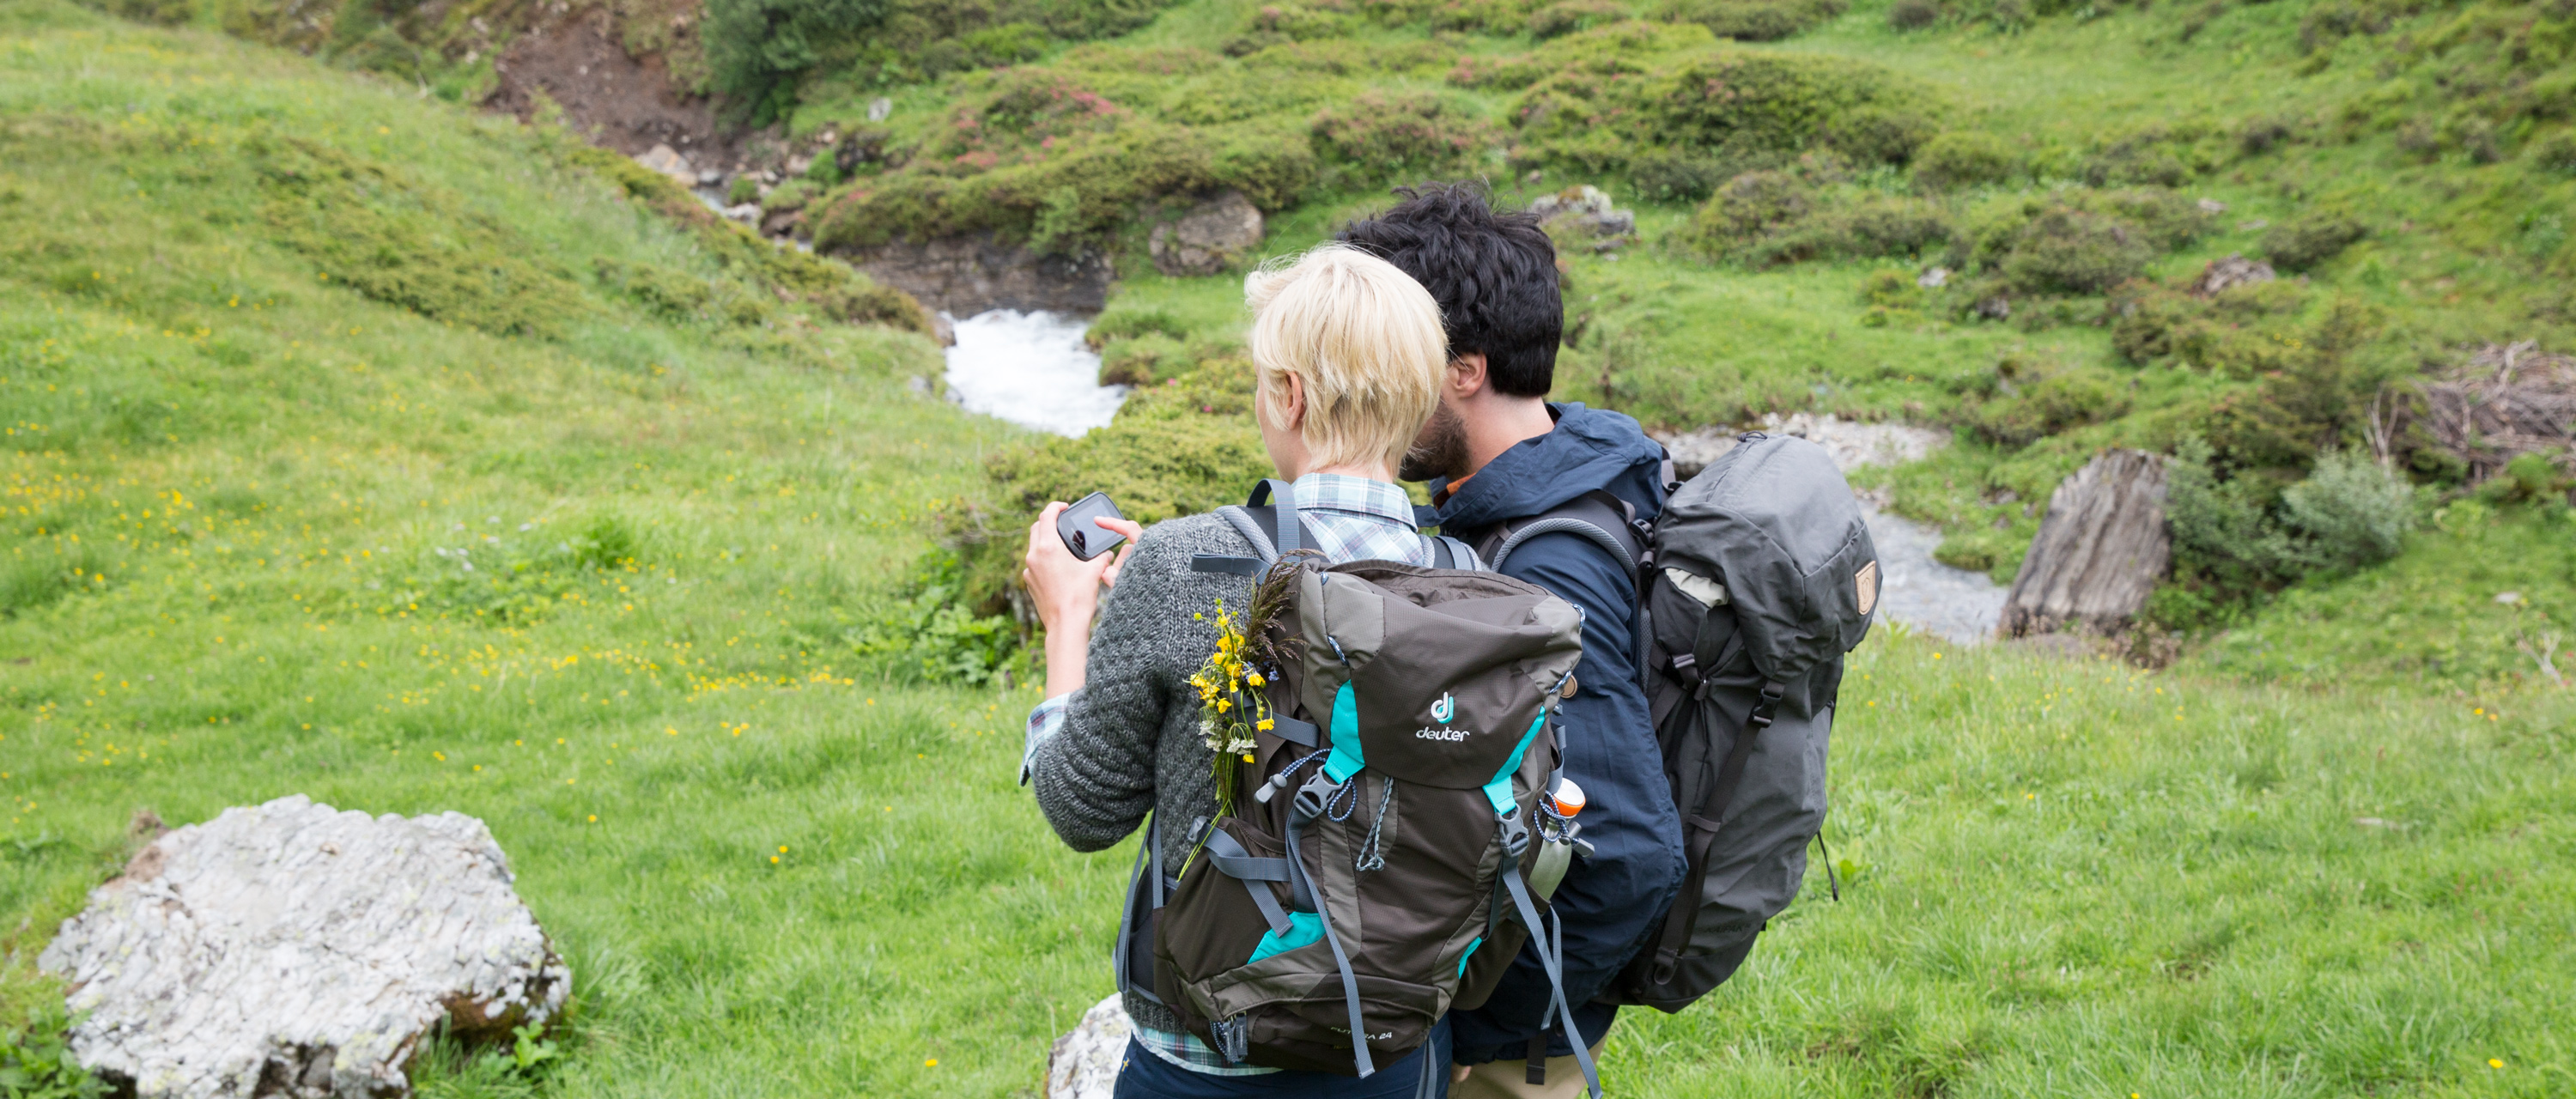 Two people are looking at photos while hiking